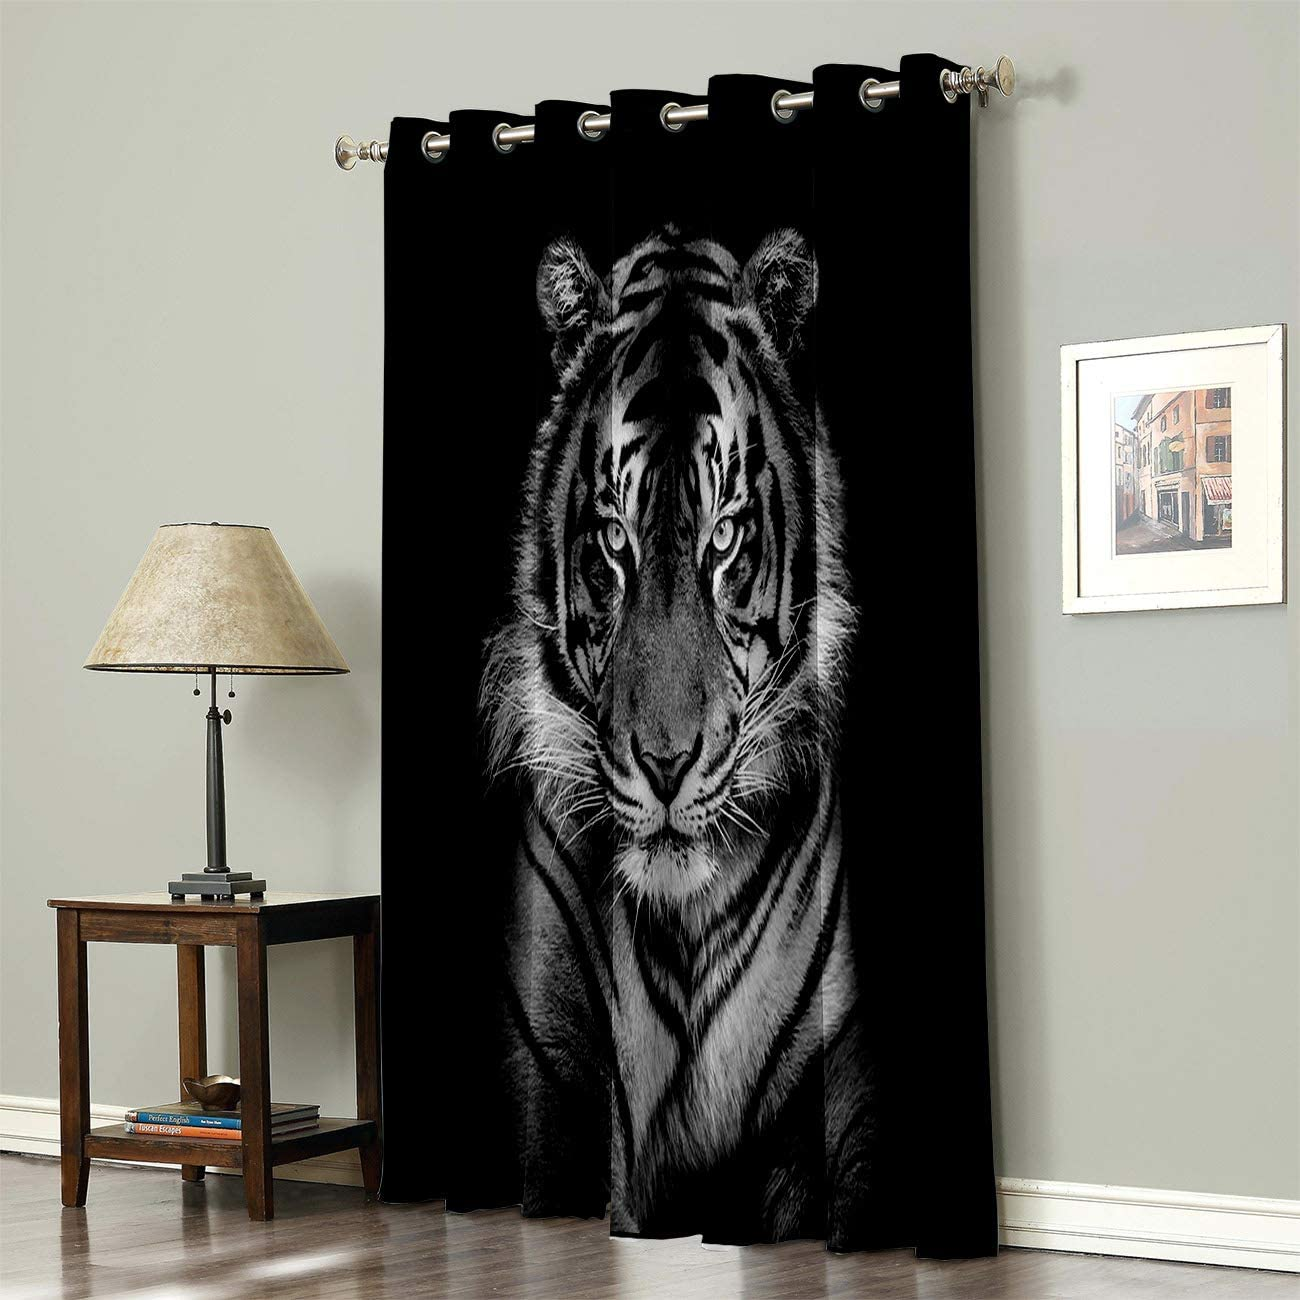 Advancey Wildlife Animal Thermal ご予約品 Insulated Curtains - 1 Blackout 2020春夏新作